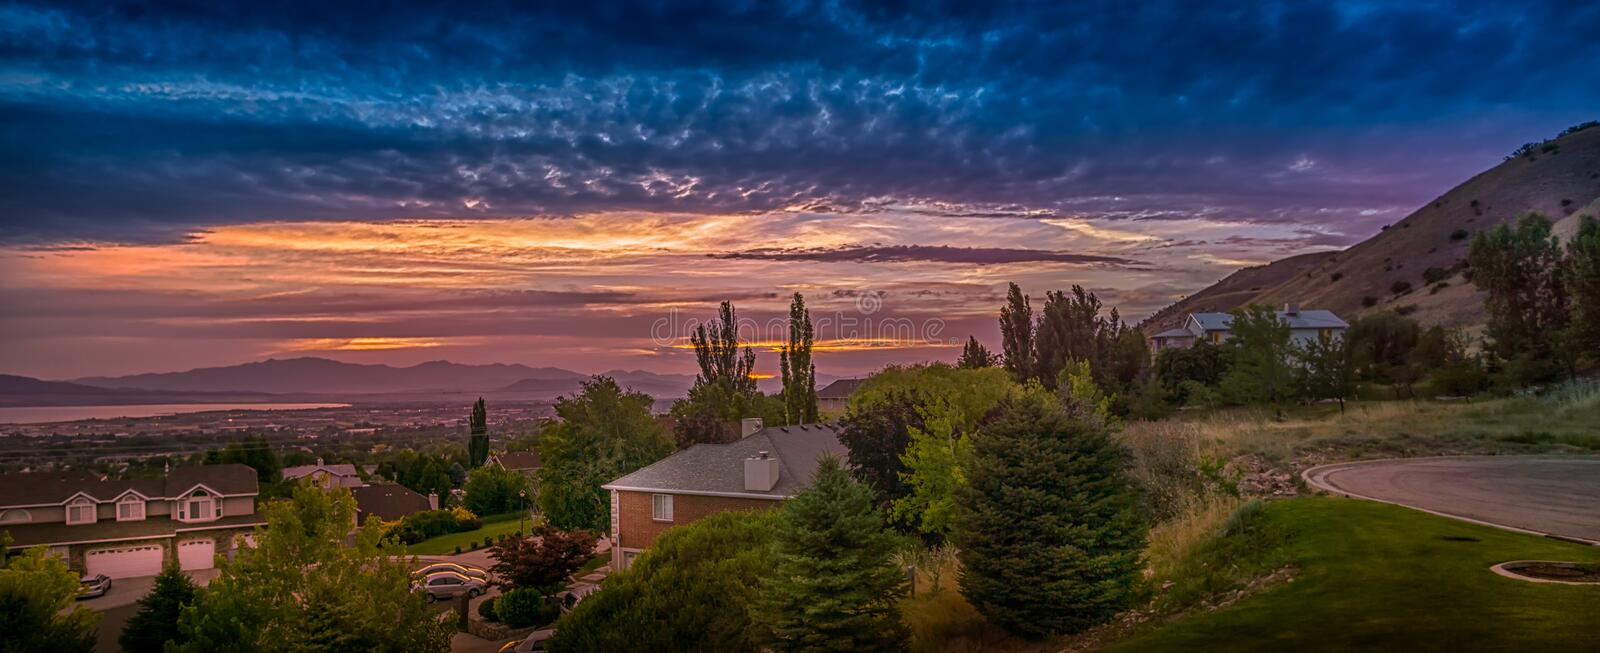 Sunset panorama in Utah Valley, Utah, USA. Sunset panorama in Utah Valley, Utah, USA with views of Orem and Lindon cities royalty free stock image